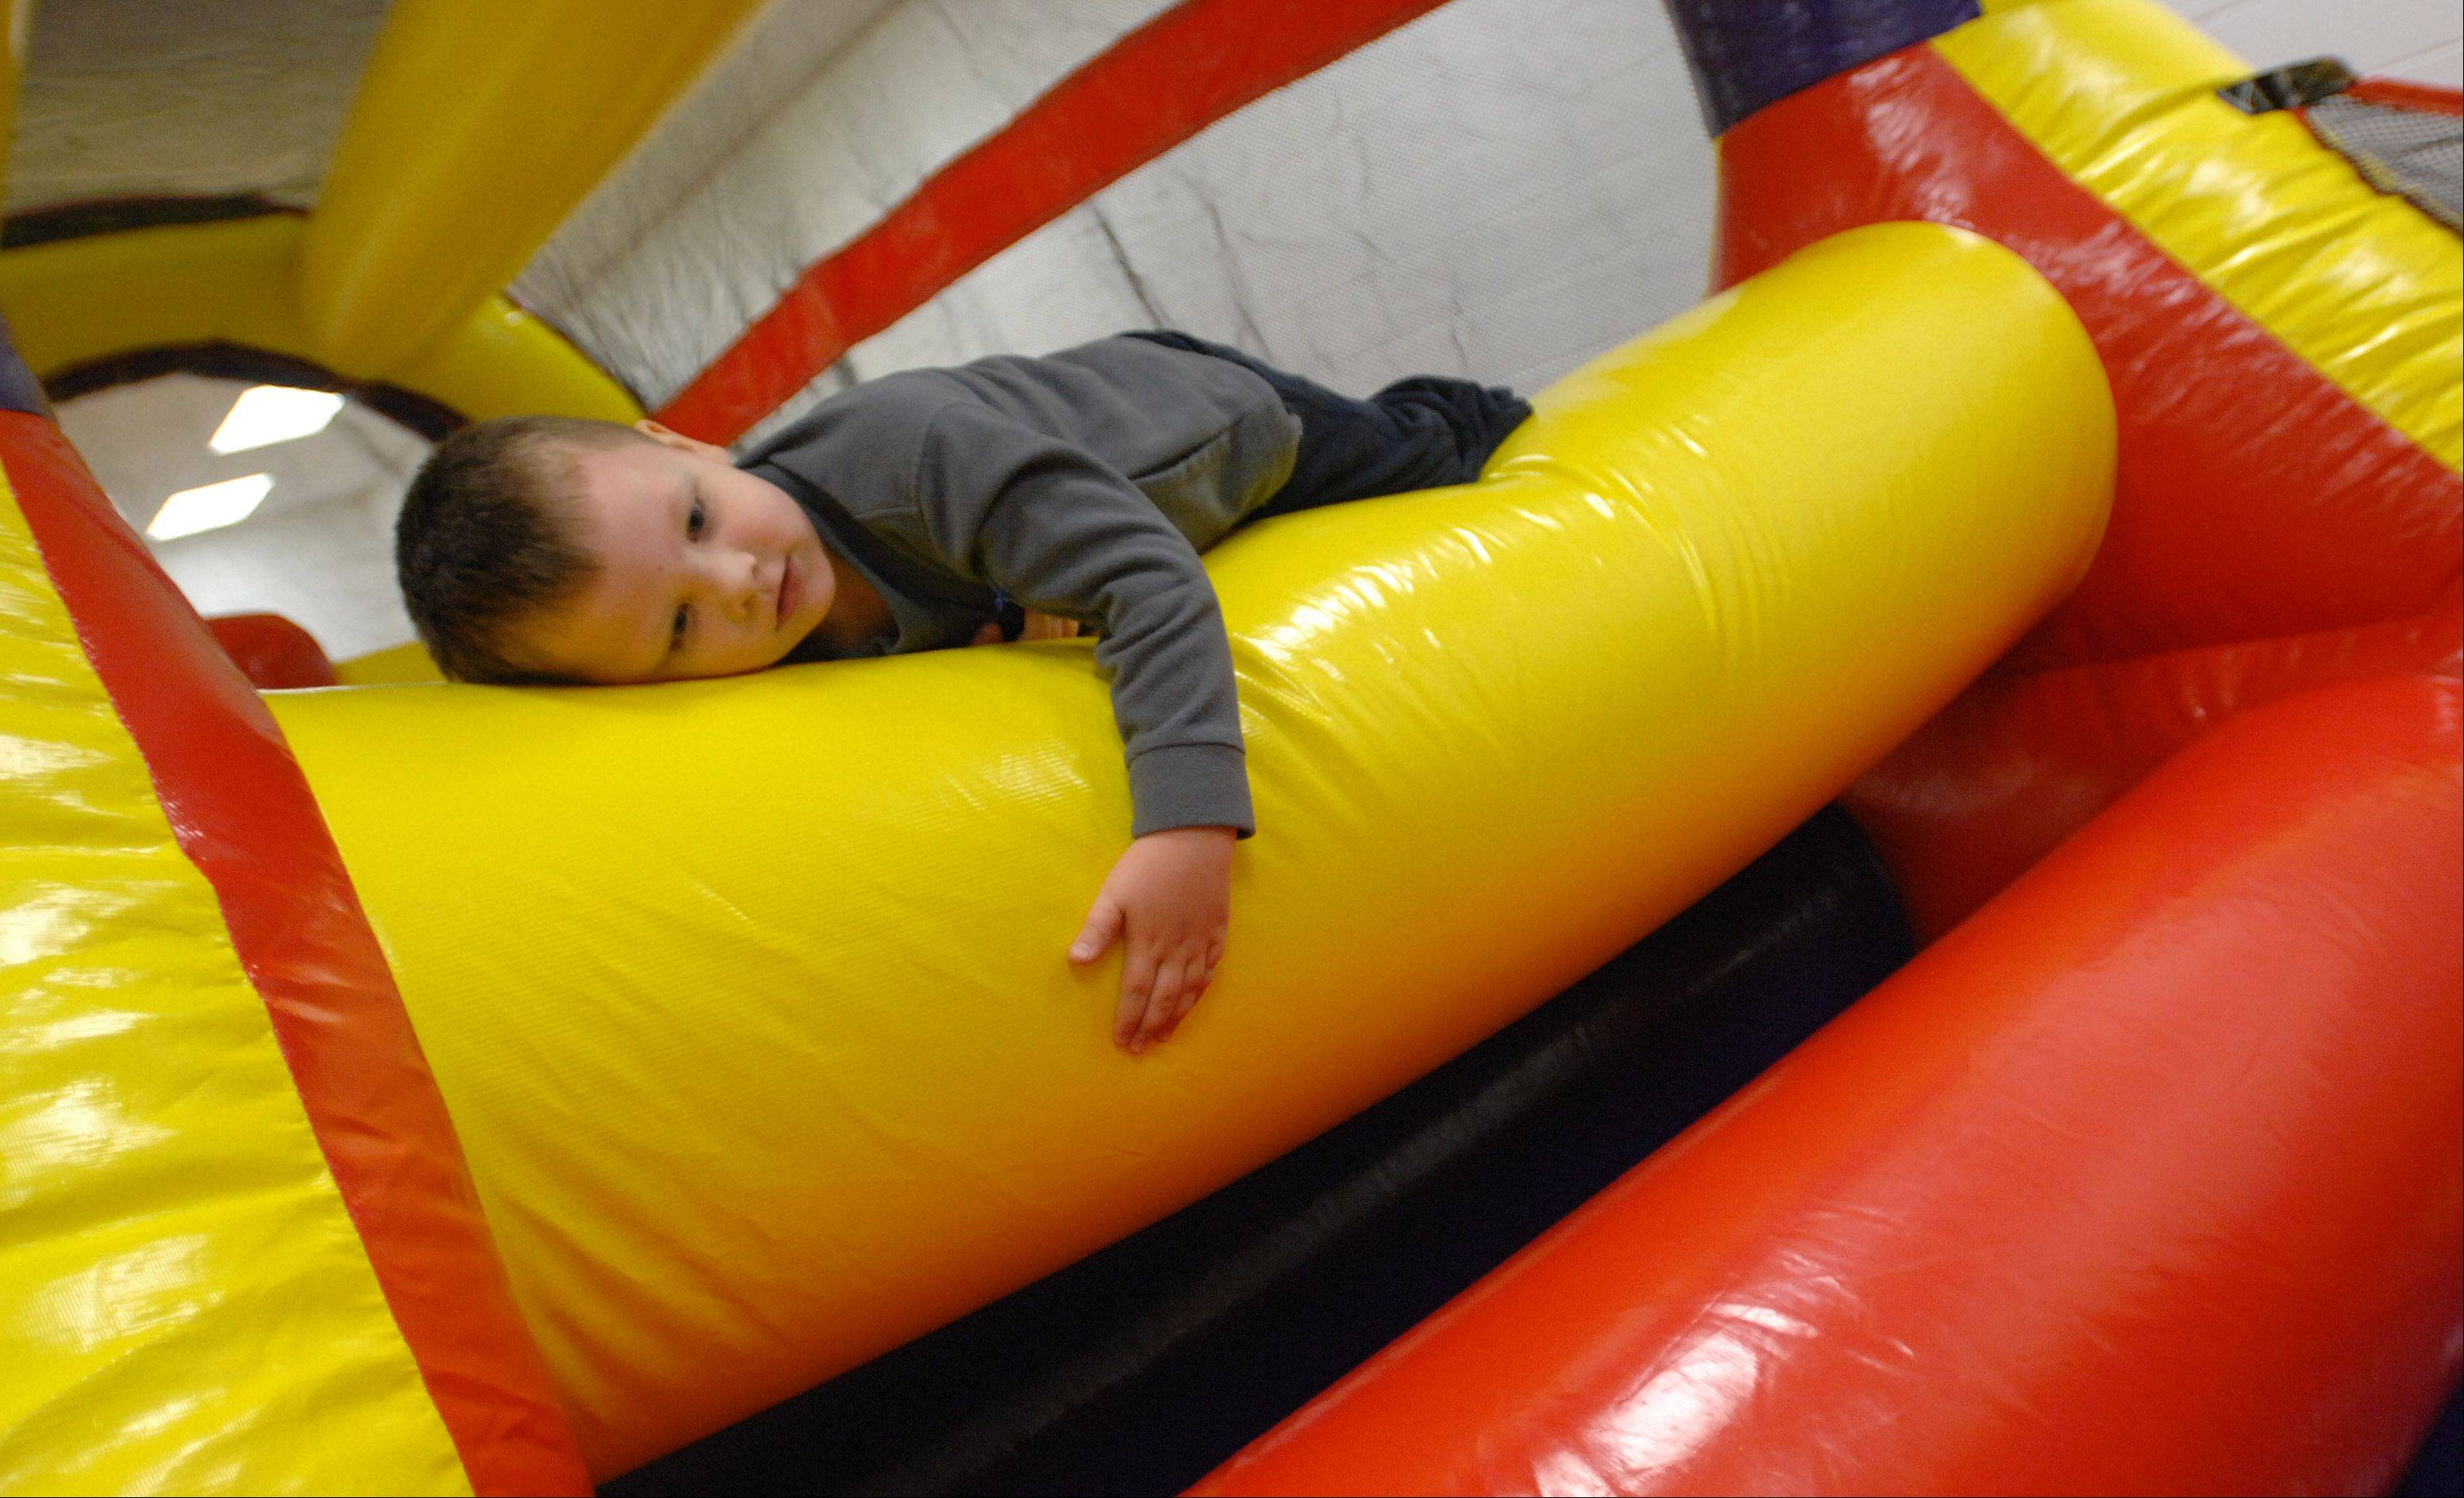 Joe Wyatt, 4, of Lombard plays in the bounce house at the Take Time for Tots Day at Sunset Knoll Recreation Center in Lombard Saturday. Well over 200 people took part in this event. It offered a bounce house, story telling, and much more for children.